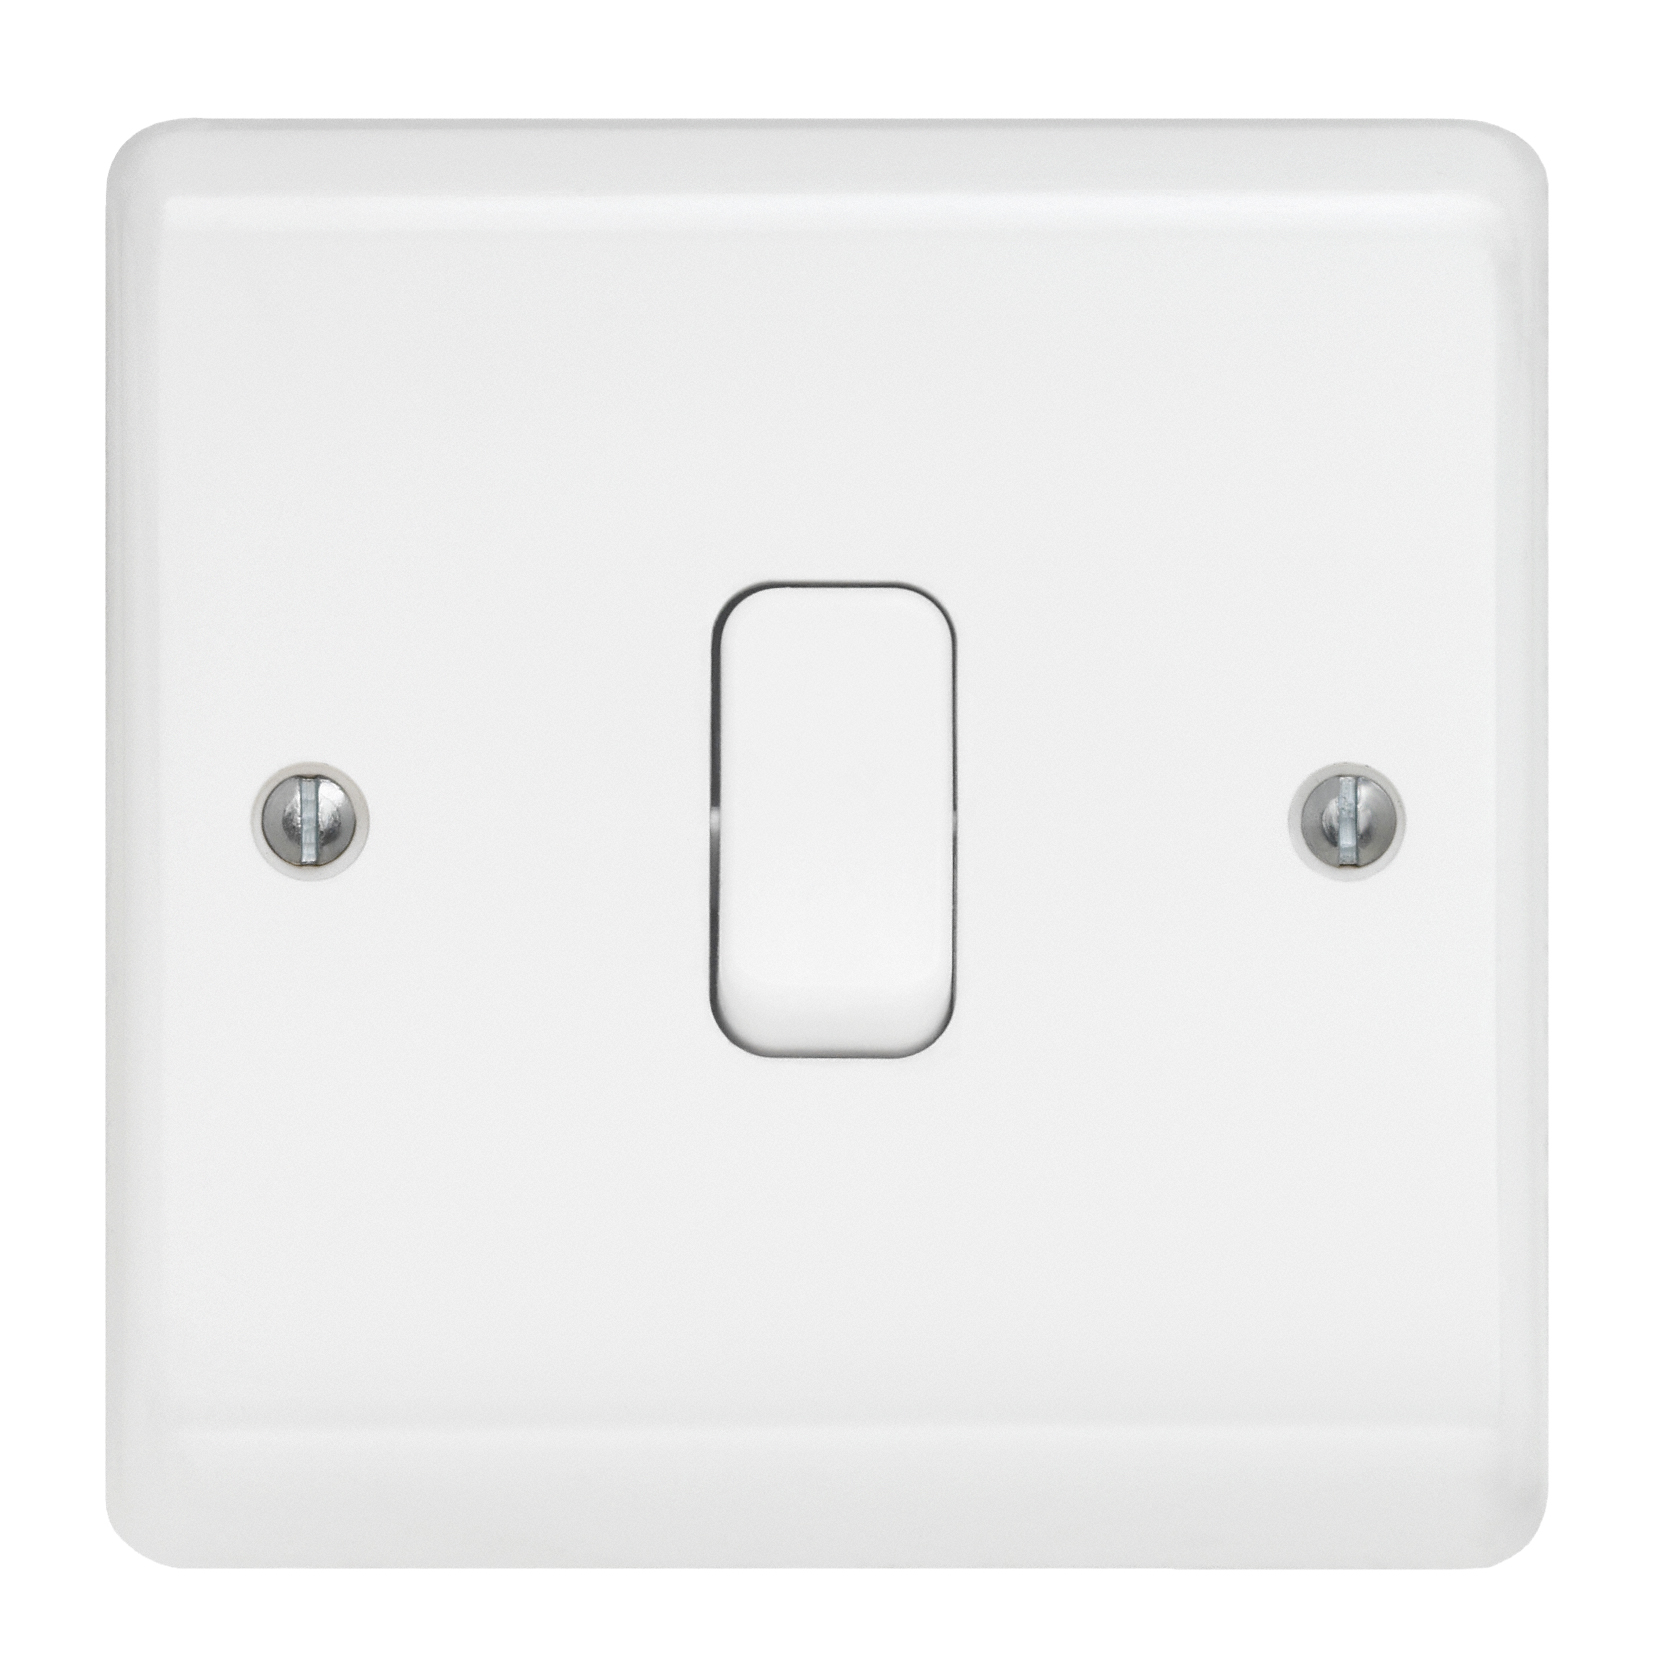 2 X 13a SWITCHED FUSED SPUR WHITE NEON GET CLASSIC RANGE CLSSN